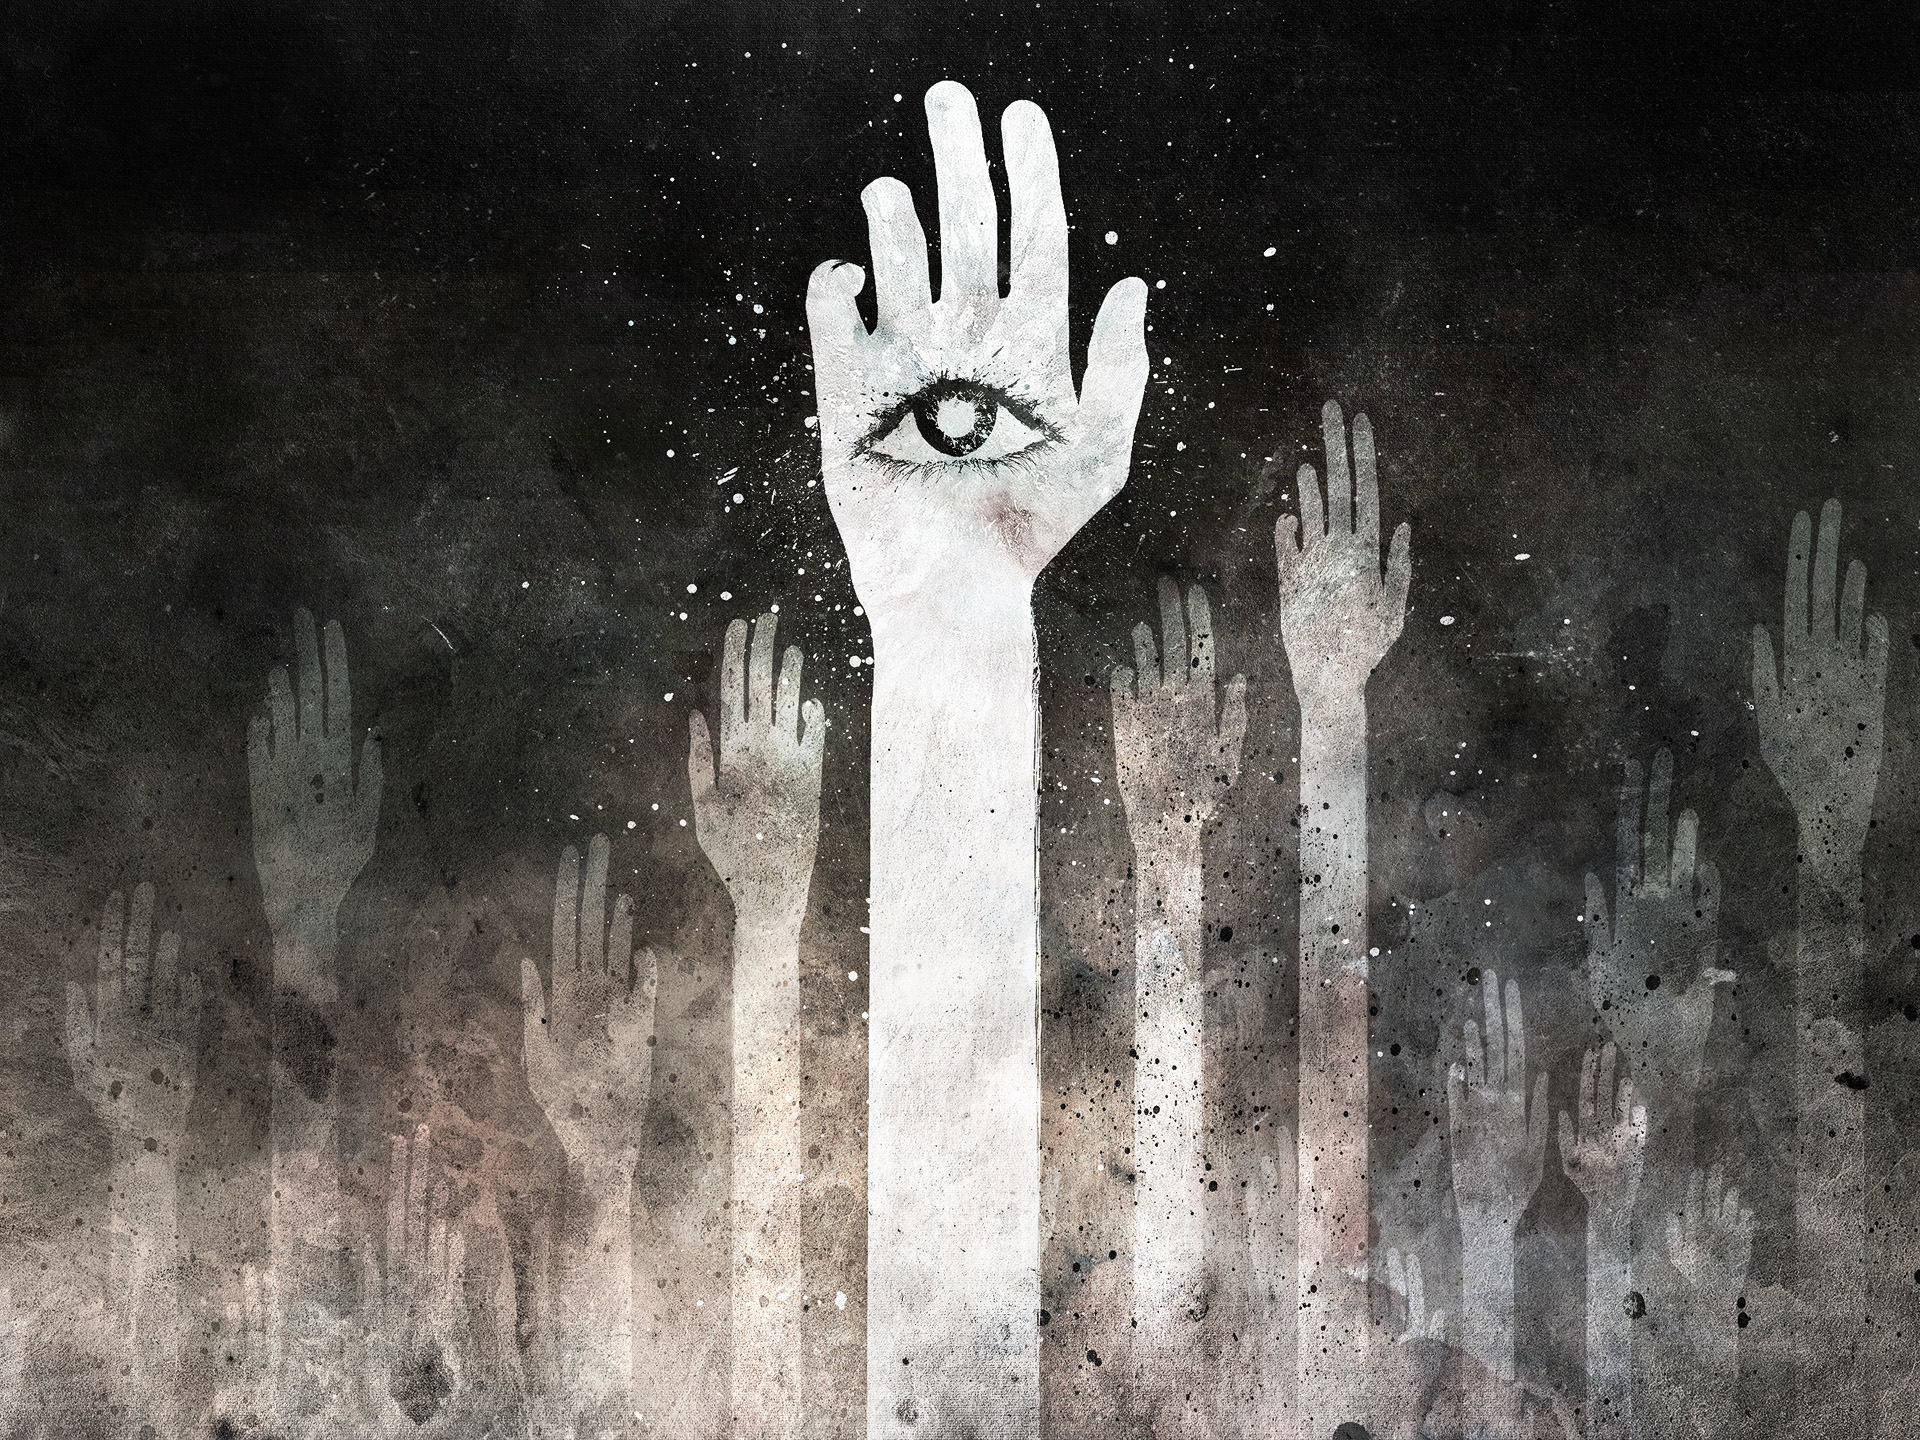 eyes resistance hands grayscale HD Wallpaper